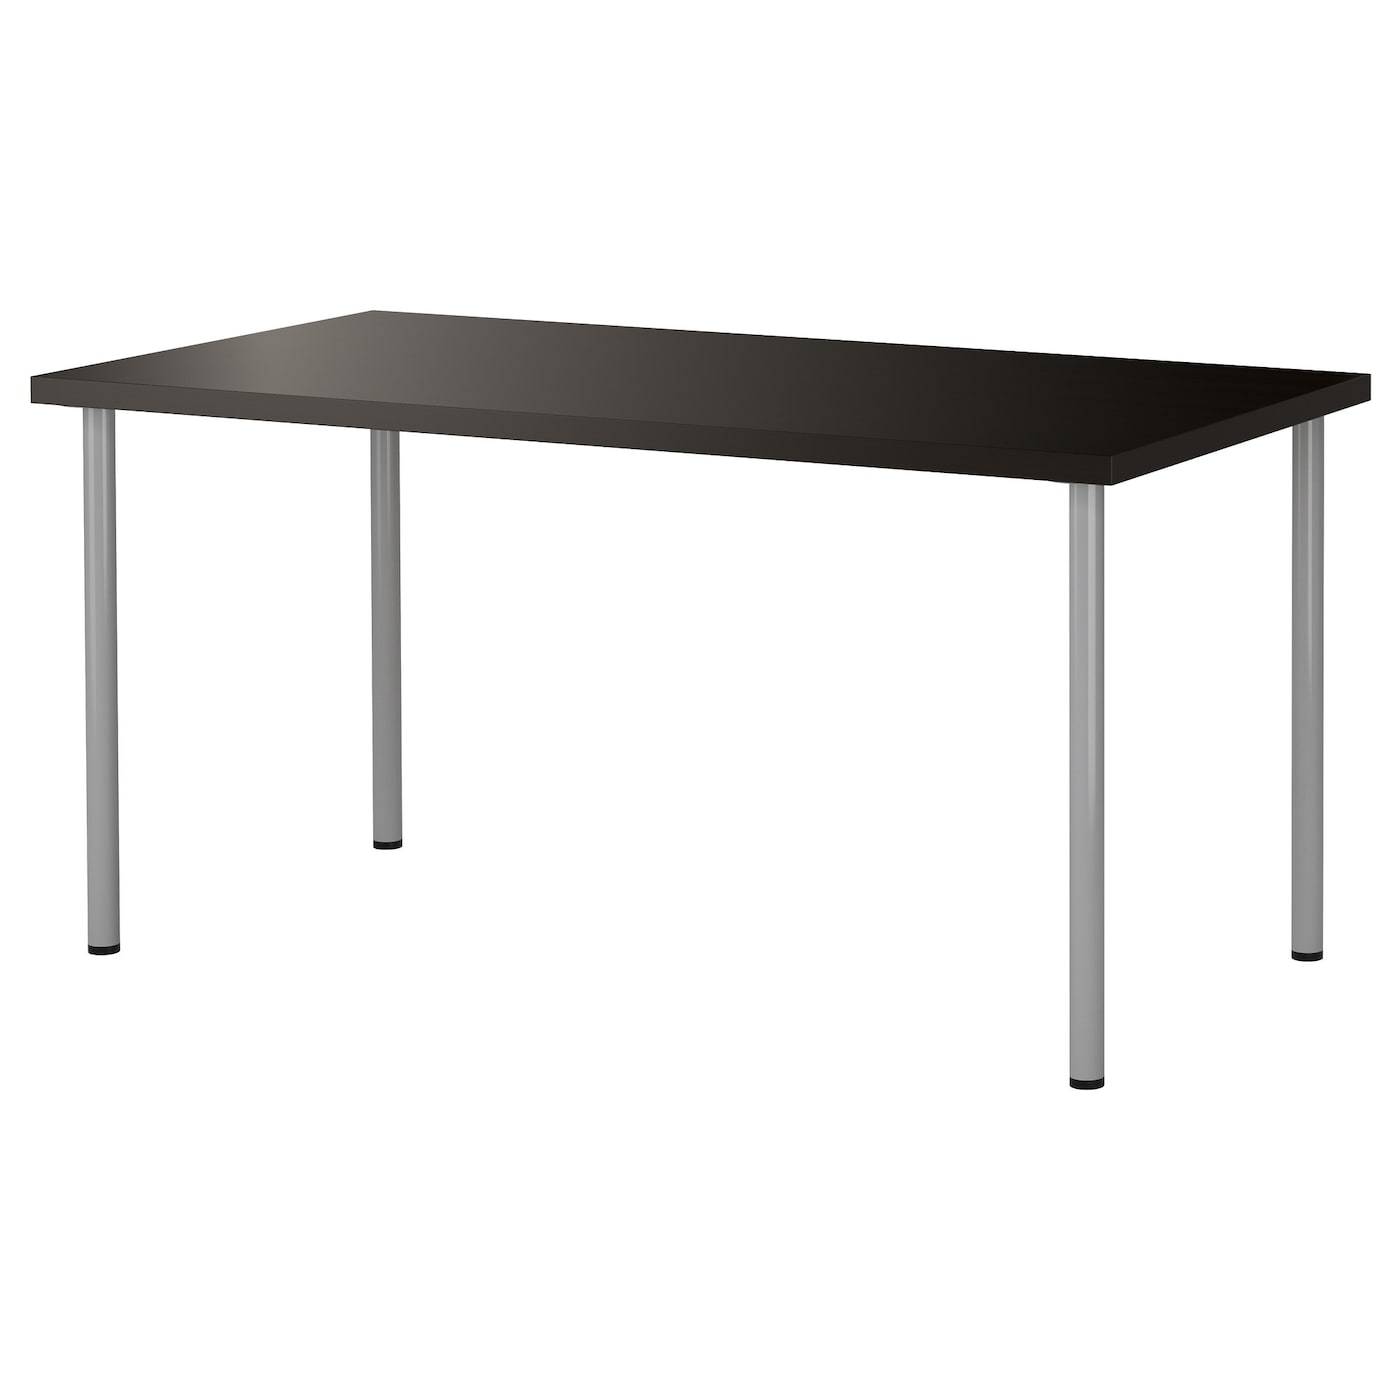 adils linnmon table black brown silver colour 150 x 75 cm ikea. Black Bedroom Furniture Sets. Home Design Ideas